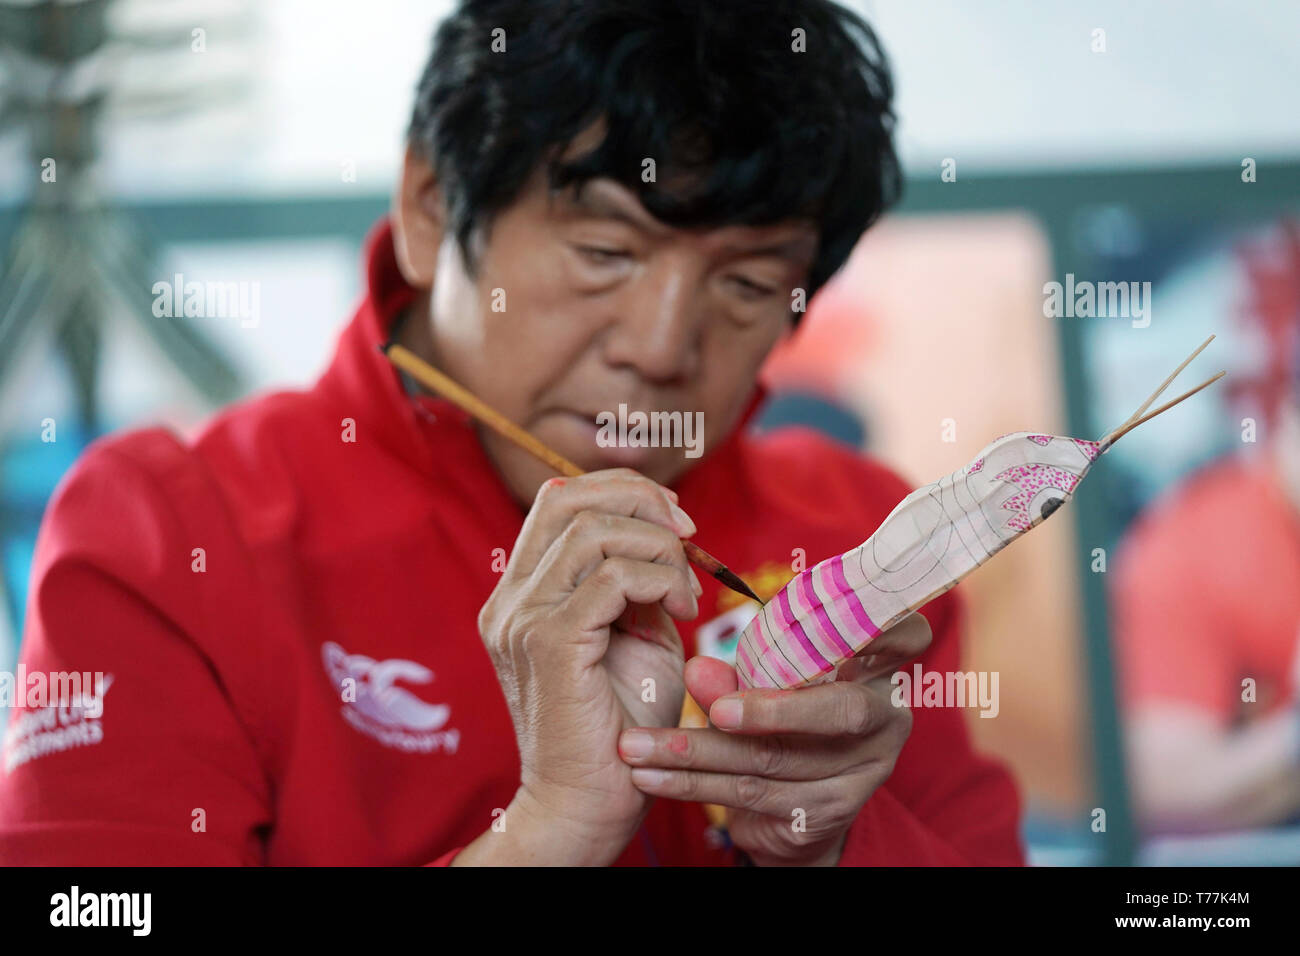 Beijing, China. 5th May, 2019. Wei Guoqiu, a respected Tianjin kite maker, shows his craft during the 'Tianjin Day' theme event held as part of the Beijing International Horticultural Exhibition in Yanqing District, Beijing, capital of China, May 5, 2019. Credit: Ju Huanzong/Xinhua/Alamy Live News - Stock Image